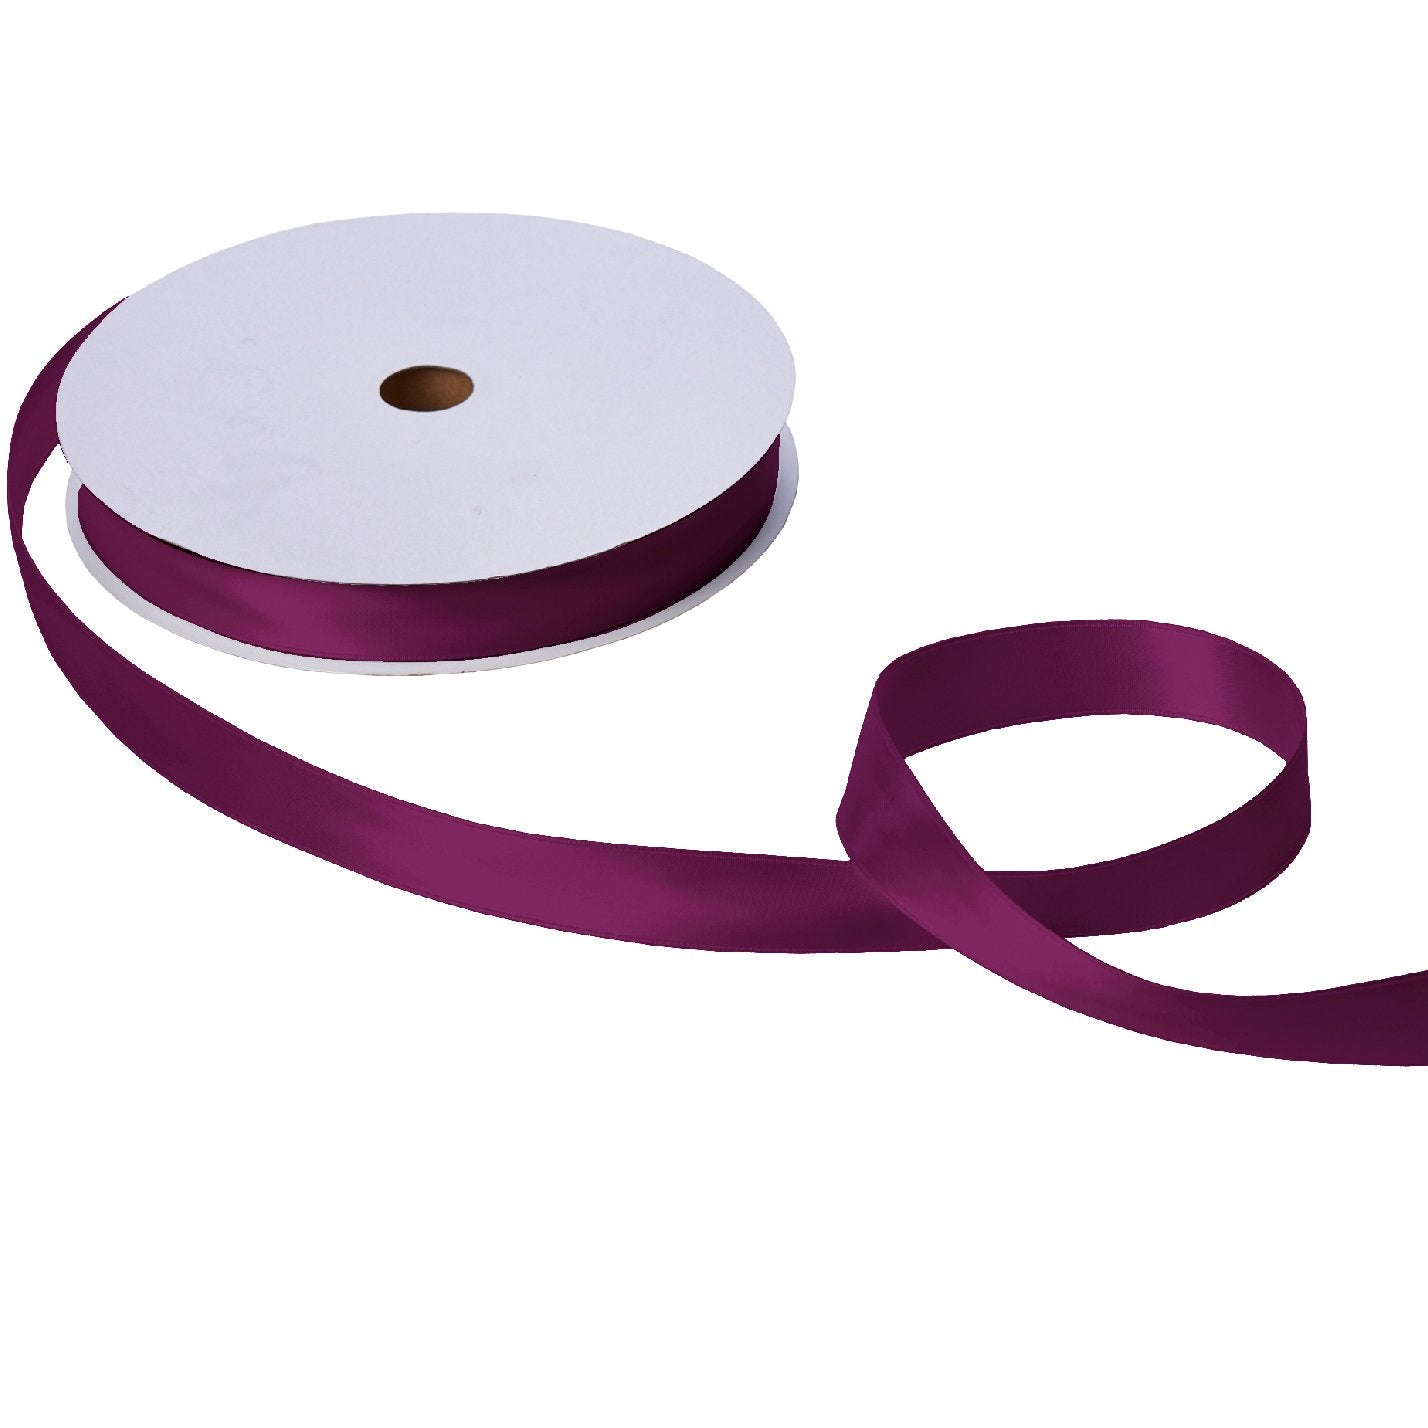 "Jillson & Roberts Double-Faced Satin Ribbon, 1"" Wide x 100 Yards, Burgundy"